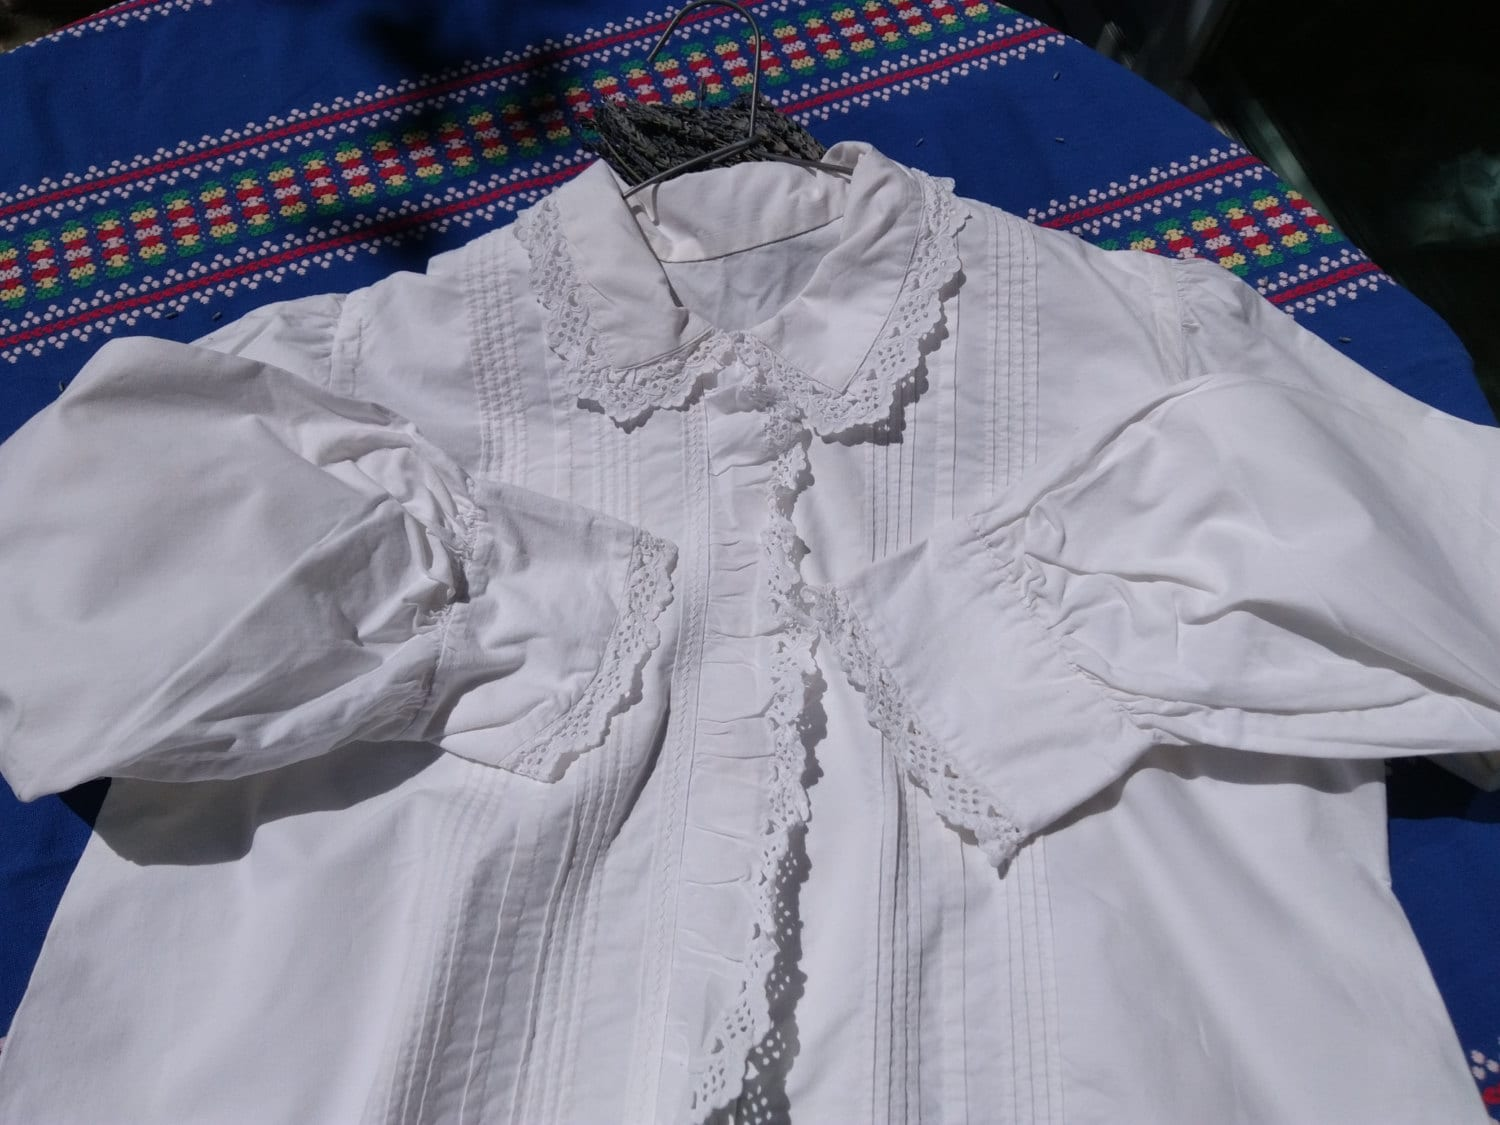 6aed30477e0d48 Antique Blouse 1900s Eyelet Lace Ruffled White Cotton Shirt French ...